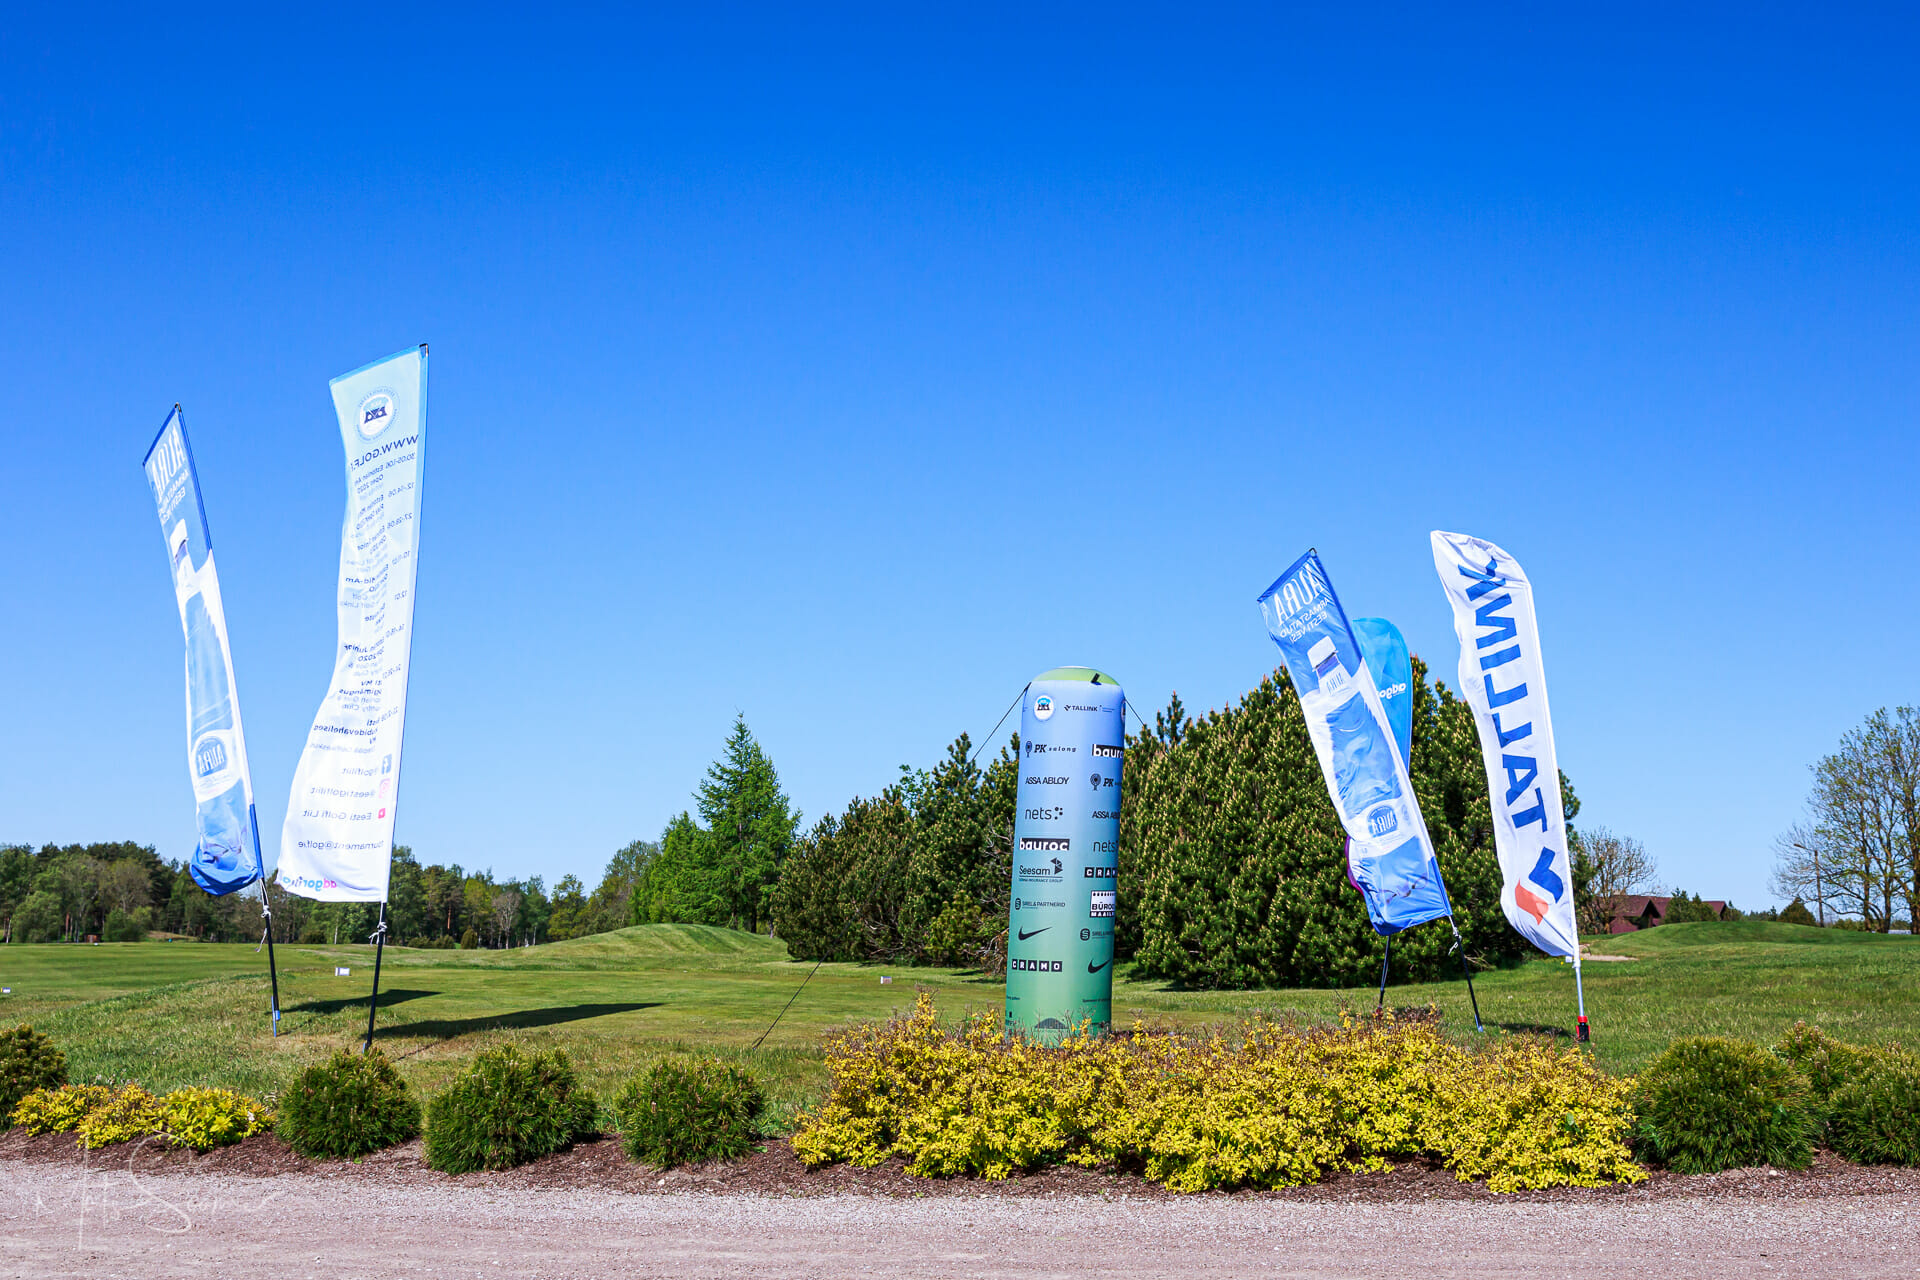 Estonian Amateur Open 2020